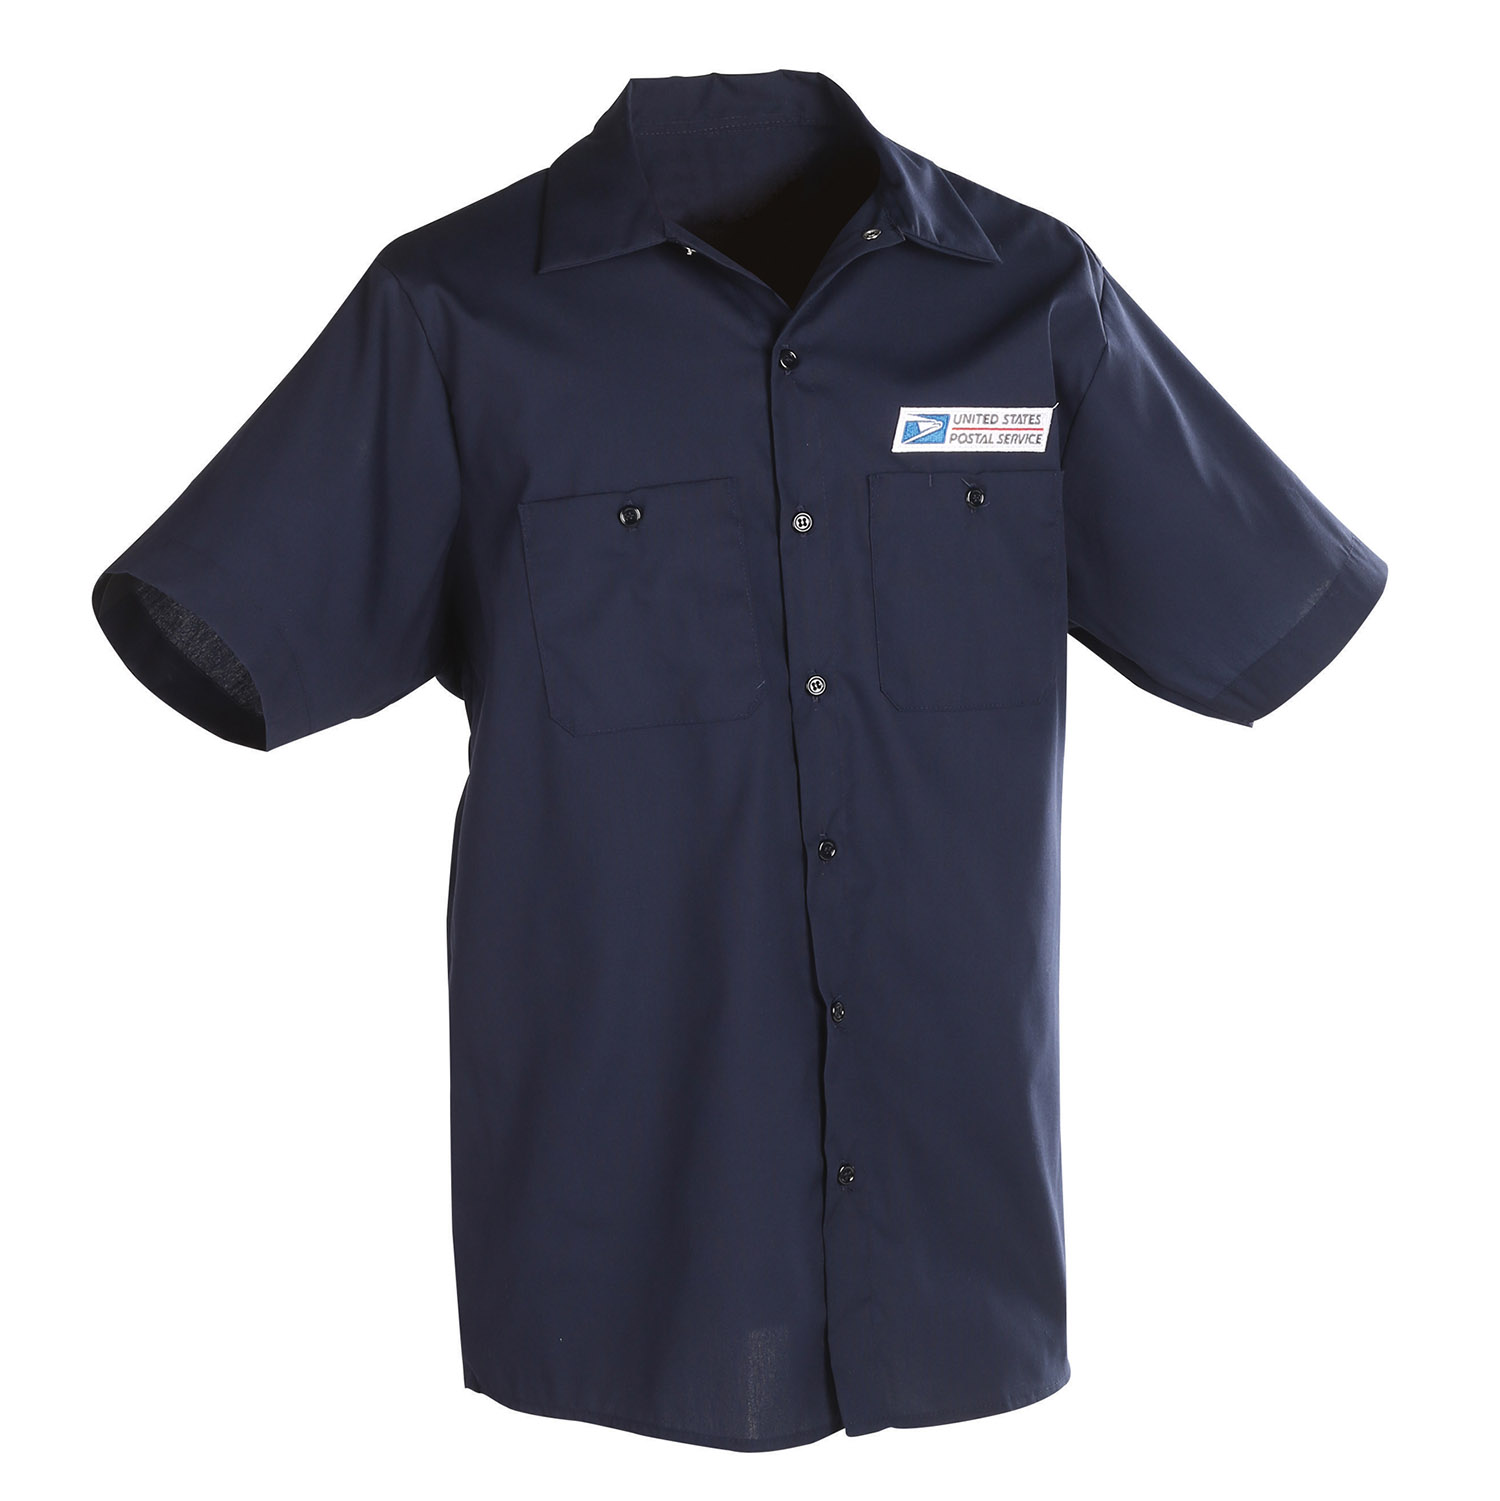 Postal Uniform Shirt Poplin Short Sleeve For Mail Handler